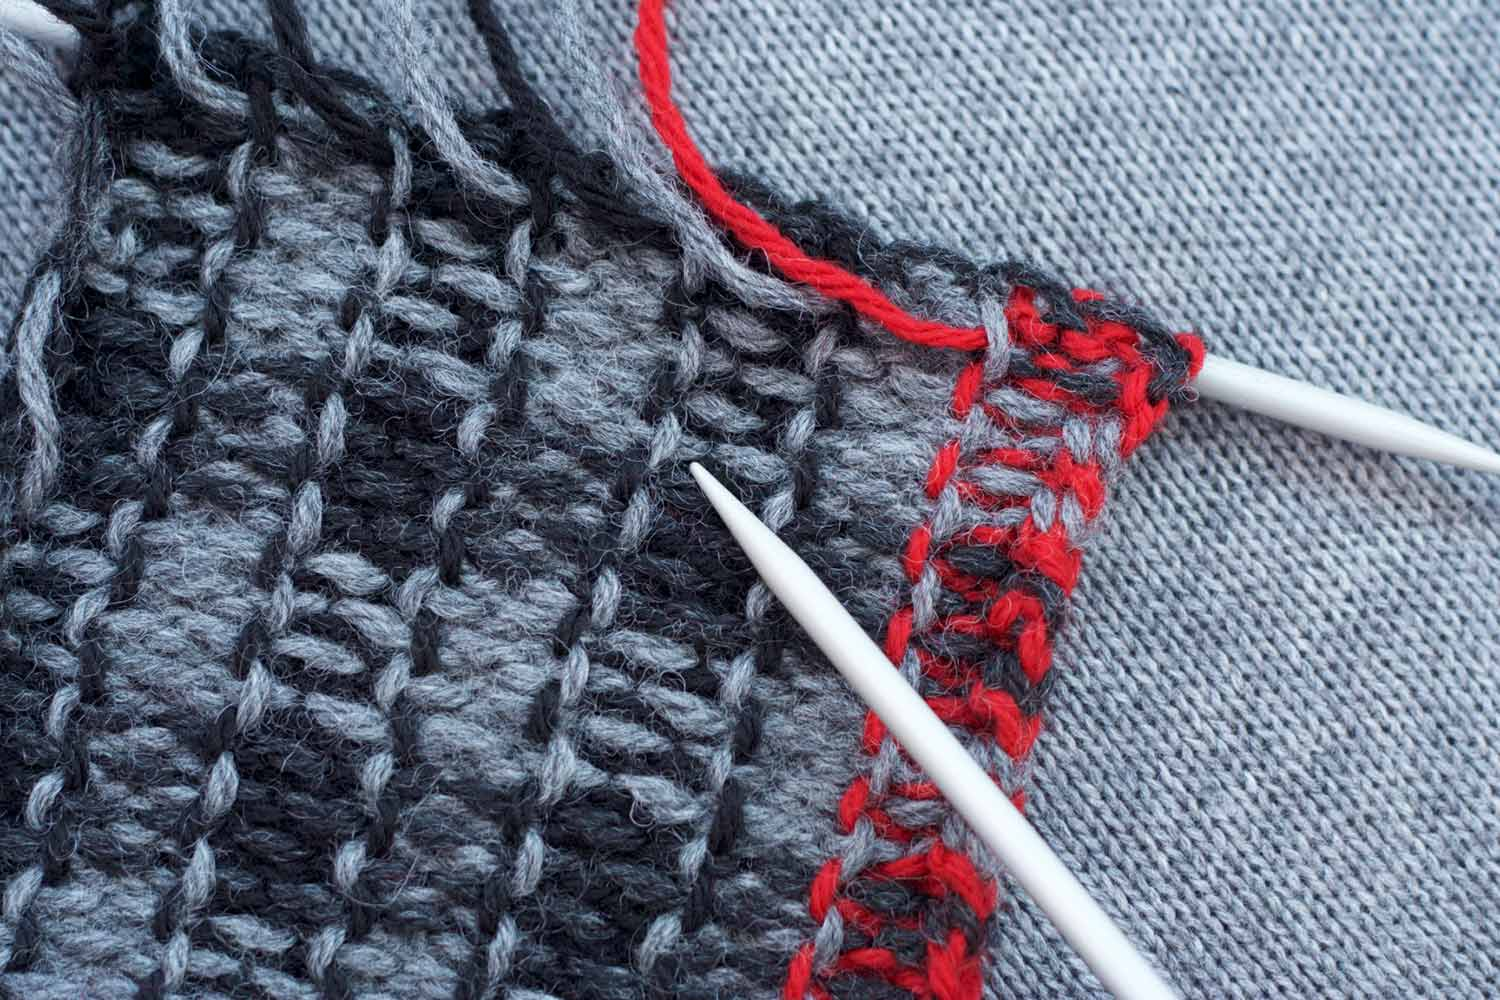 Knitting on the needle is laid on a knit background; wrong side is facing showing the intarsia joins running up the back side and the several strands of yarn needed for the intarsia columns.